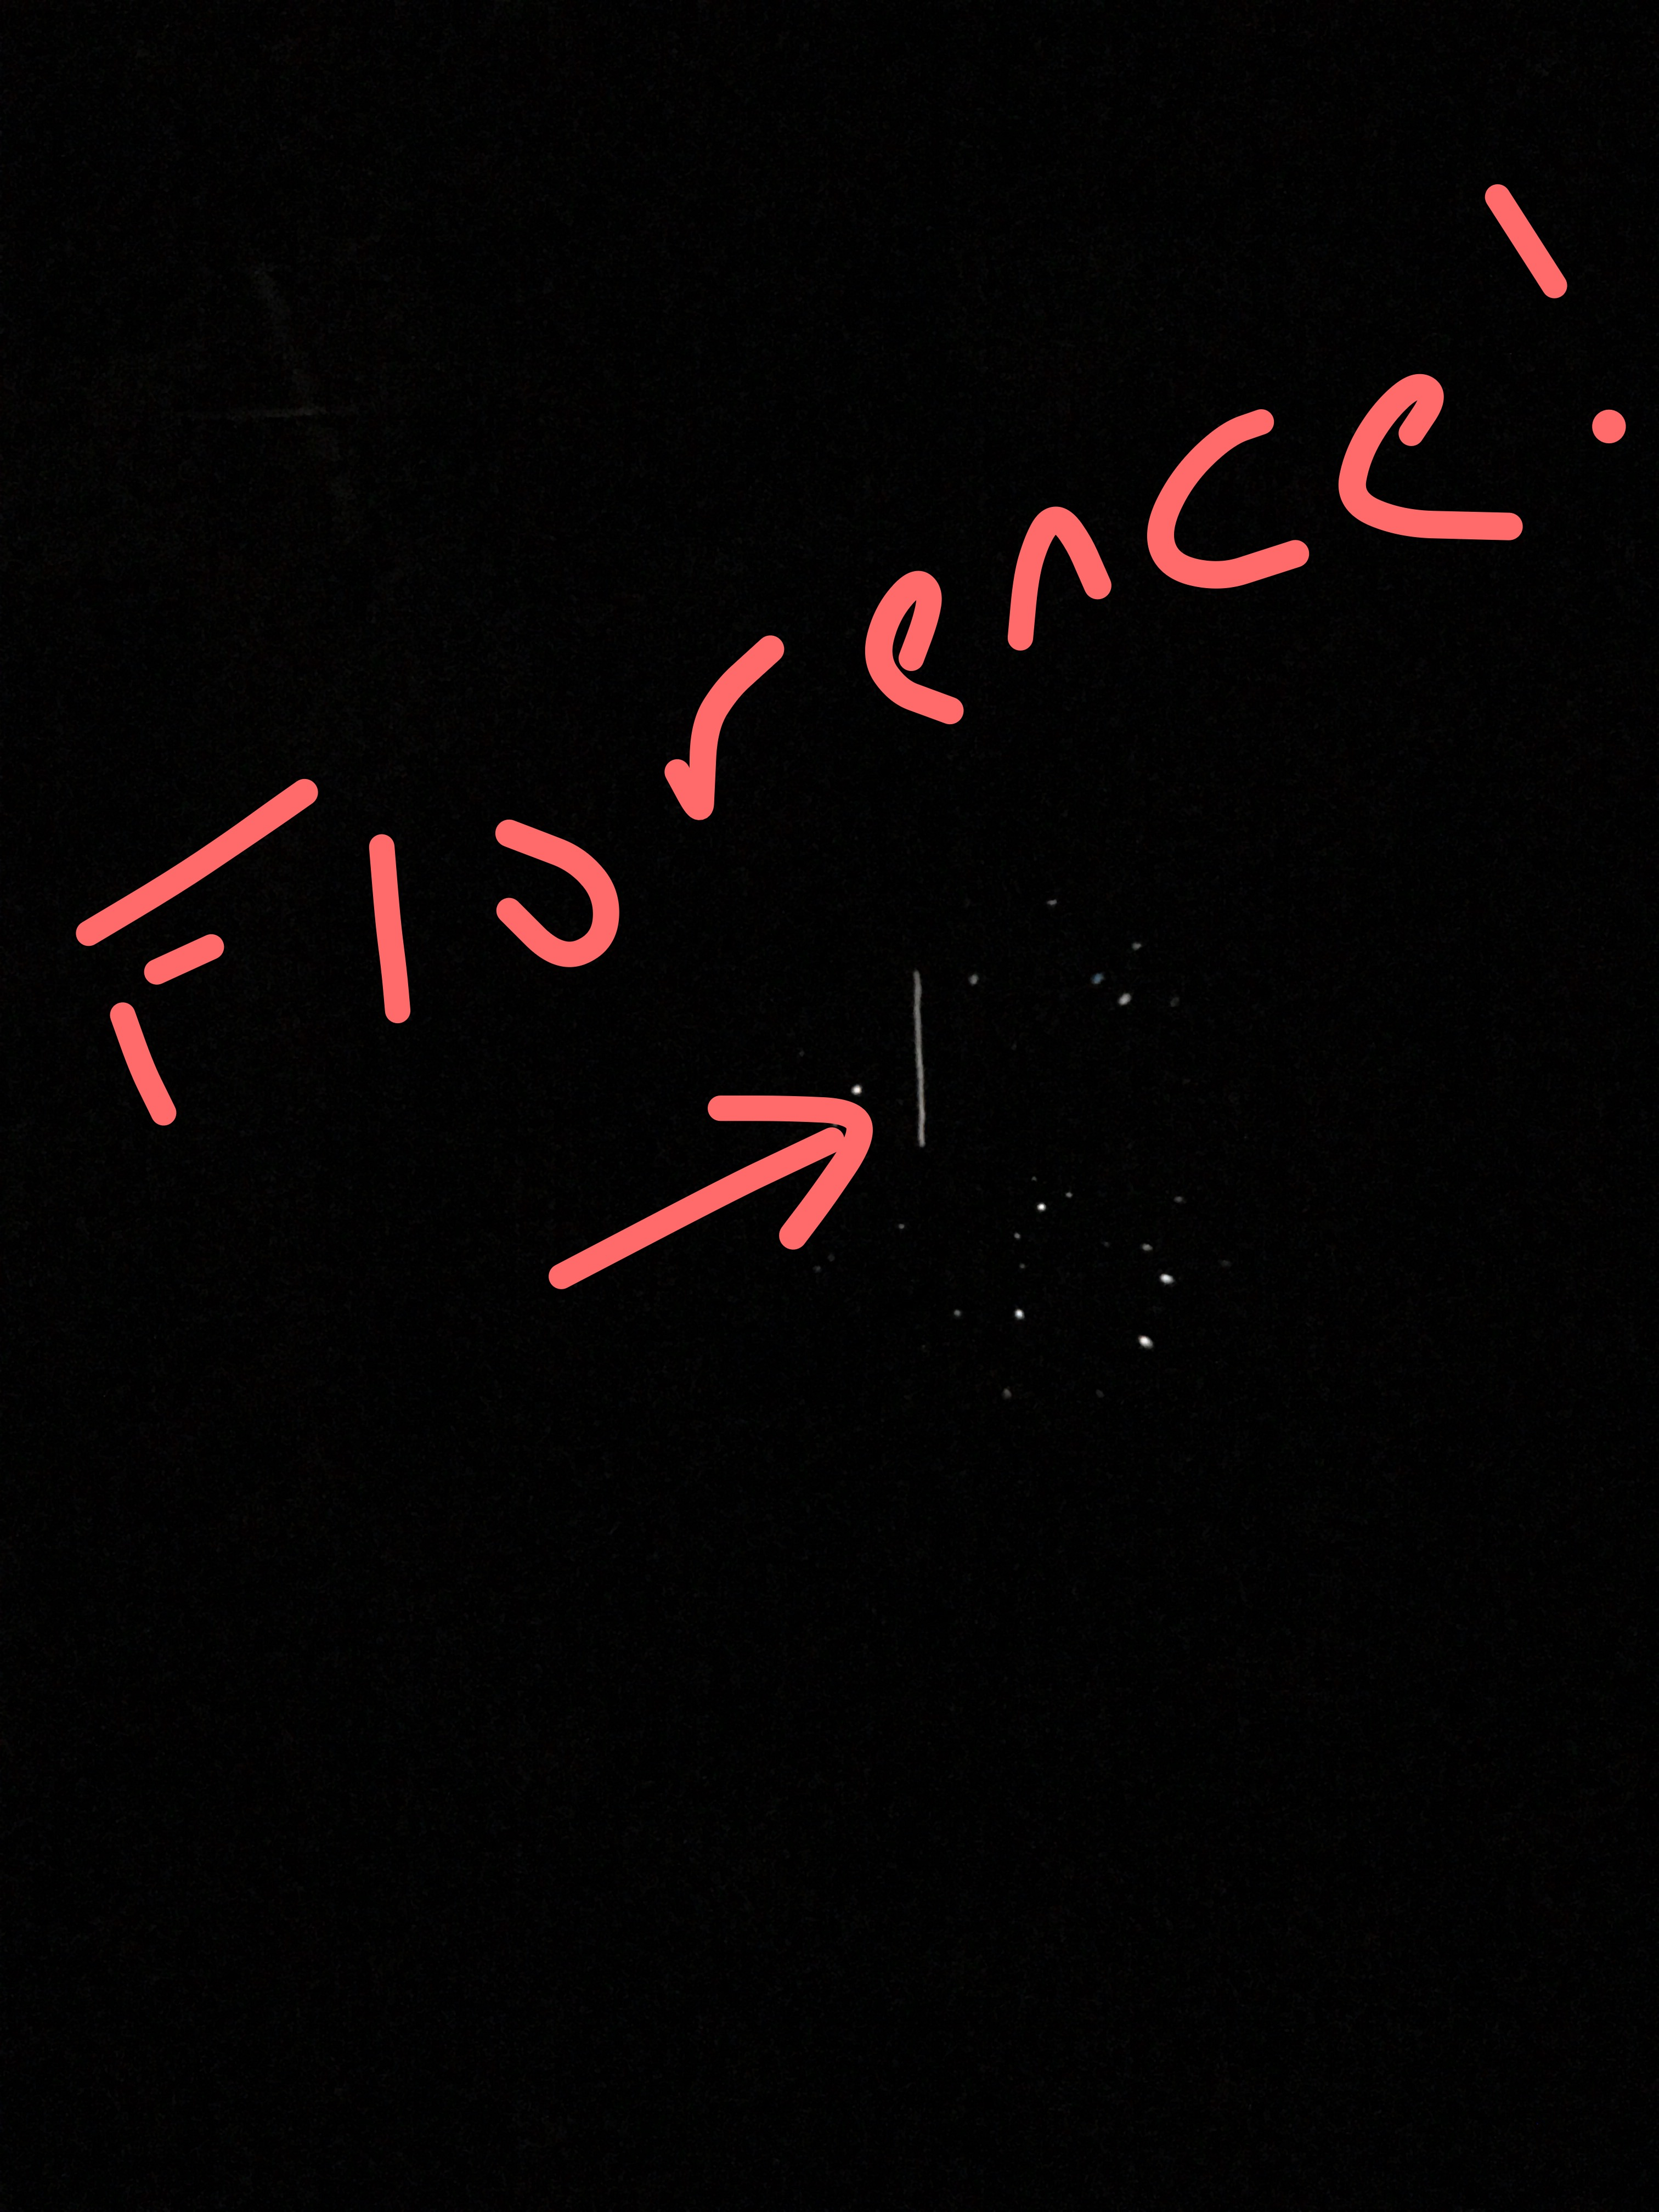 Asteroid Florence seen in the eyepiece after 20 min of observation (credit: F. Marchis)